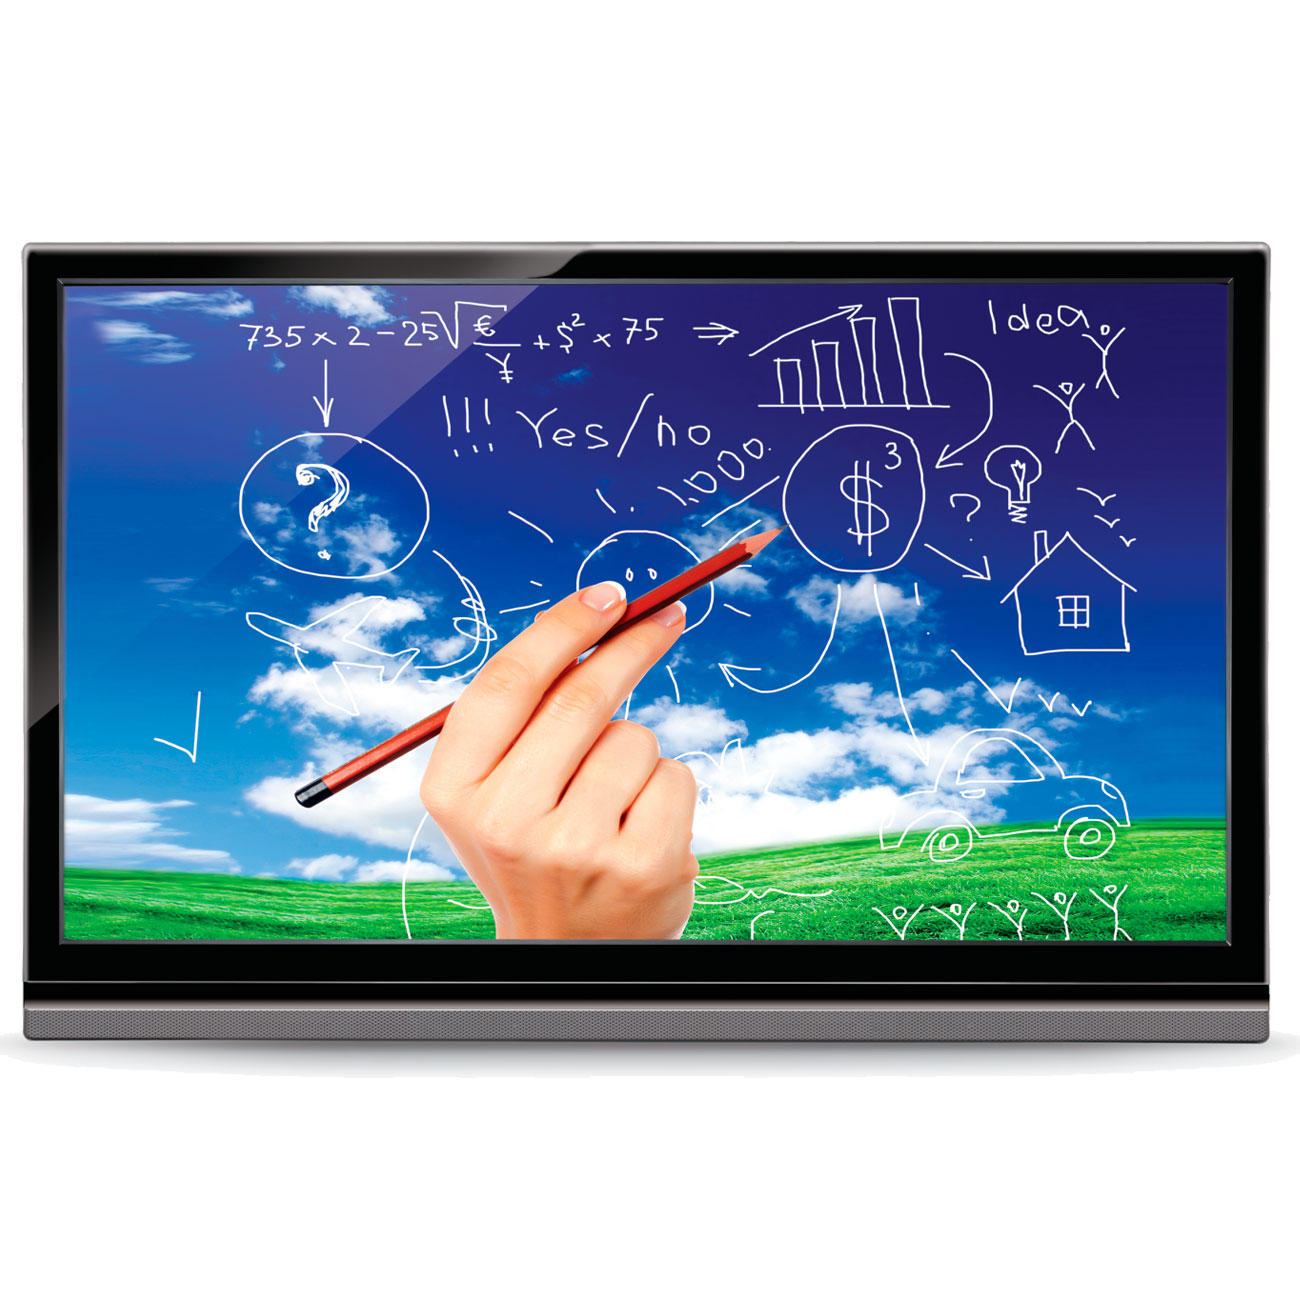 Interactive Digital Whiteboards